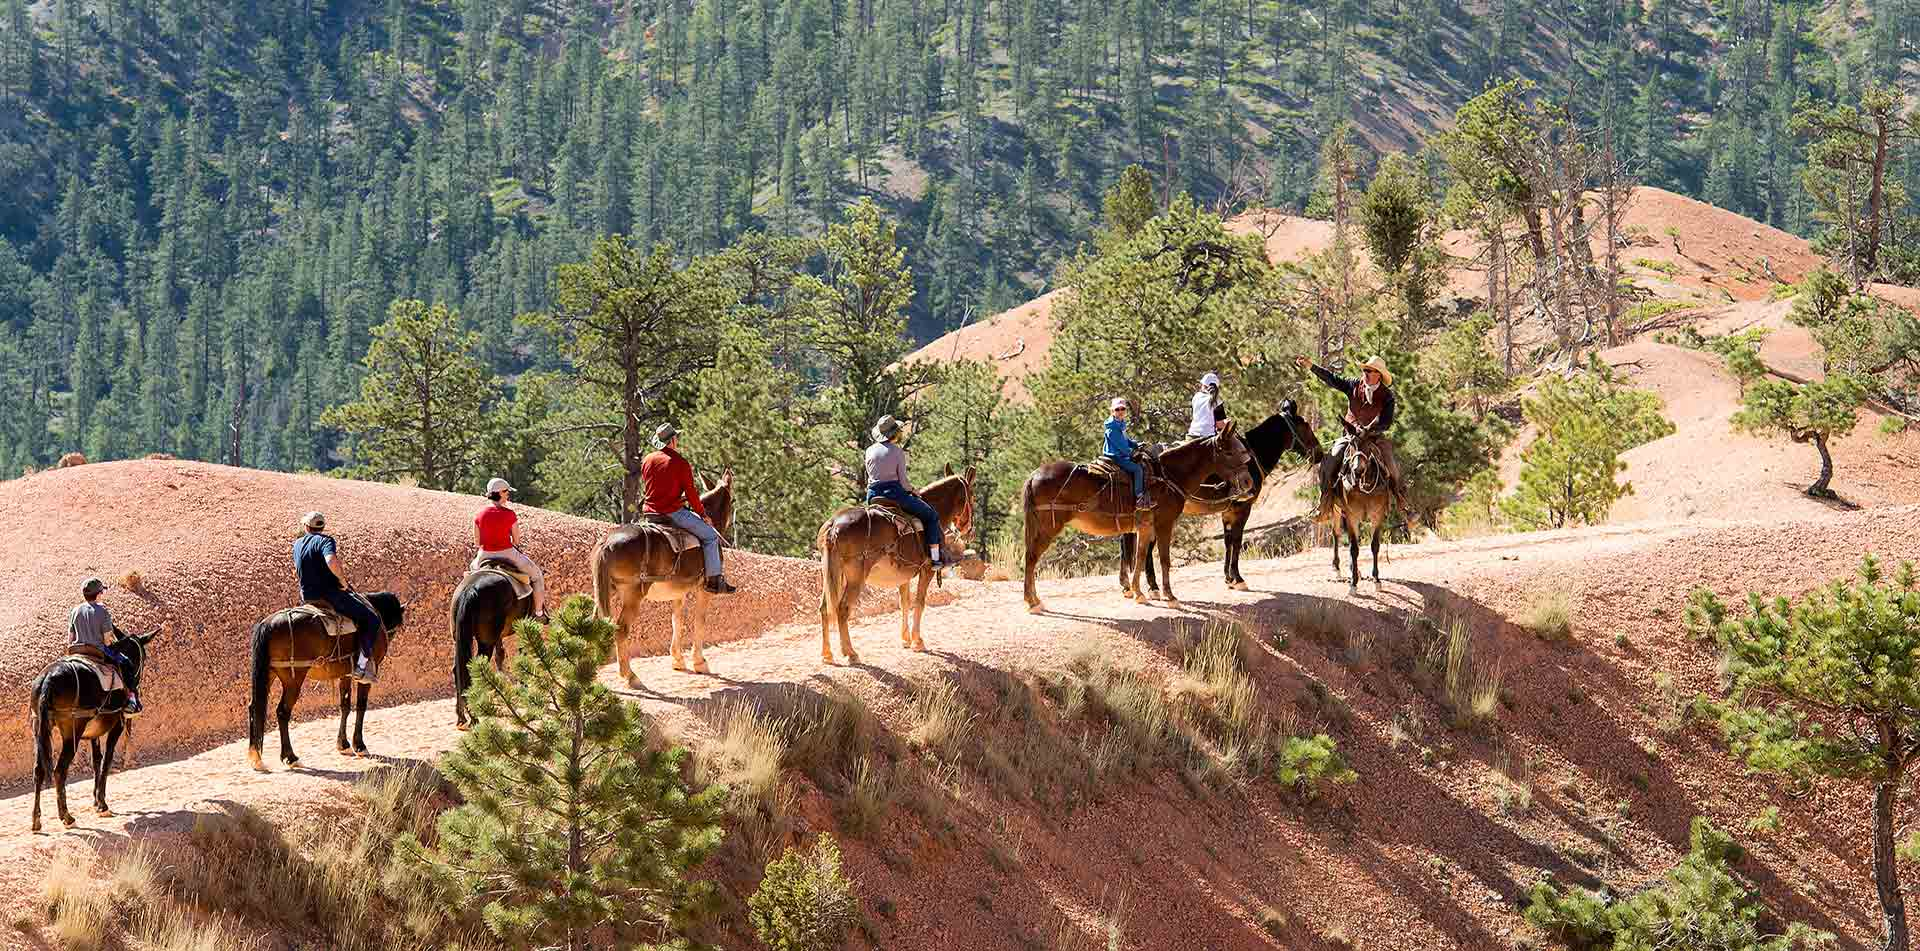 North America United States USA Utah Bryce Canyon National Park group horseback riding nature - luxury vacation destinations